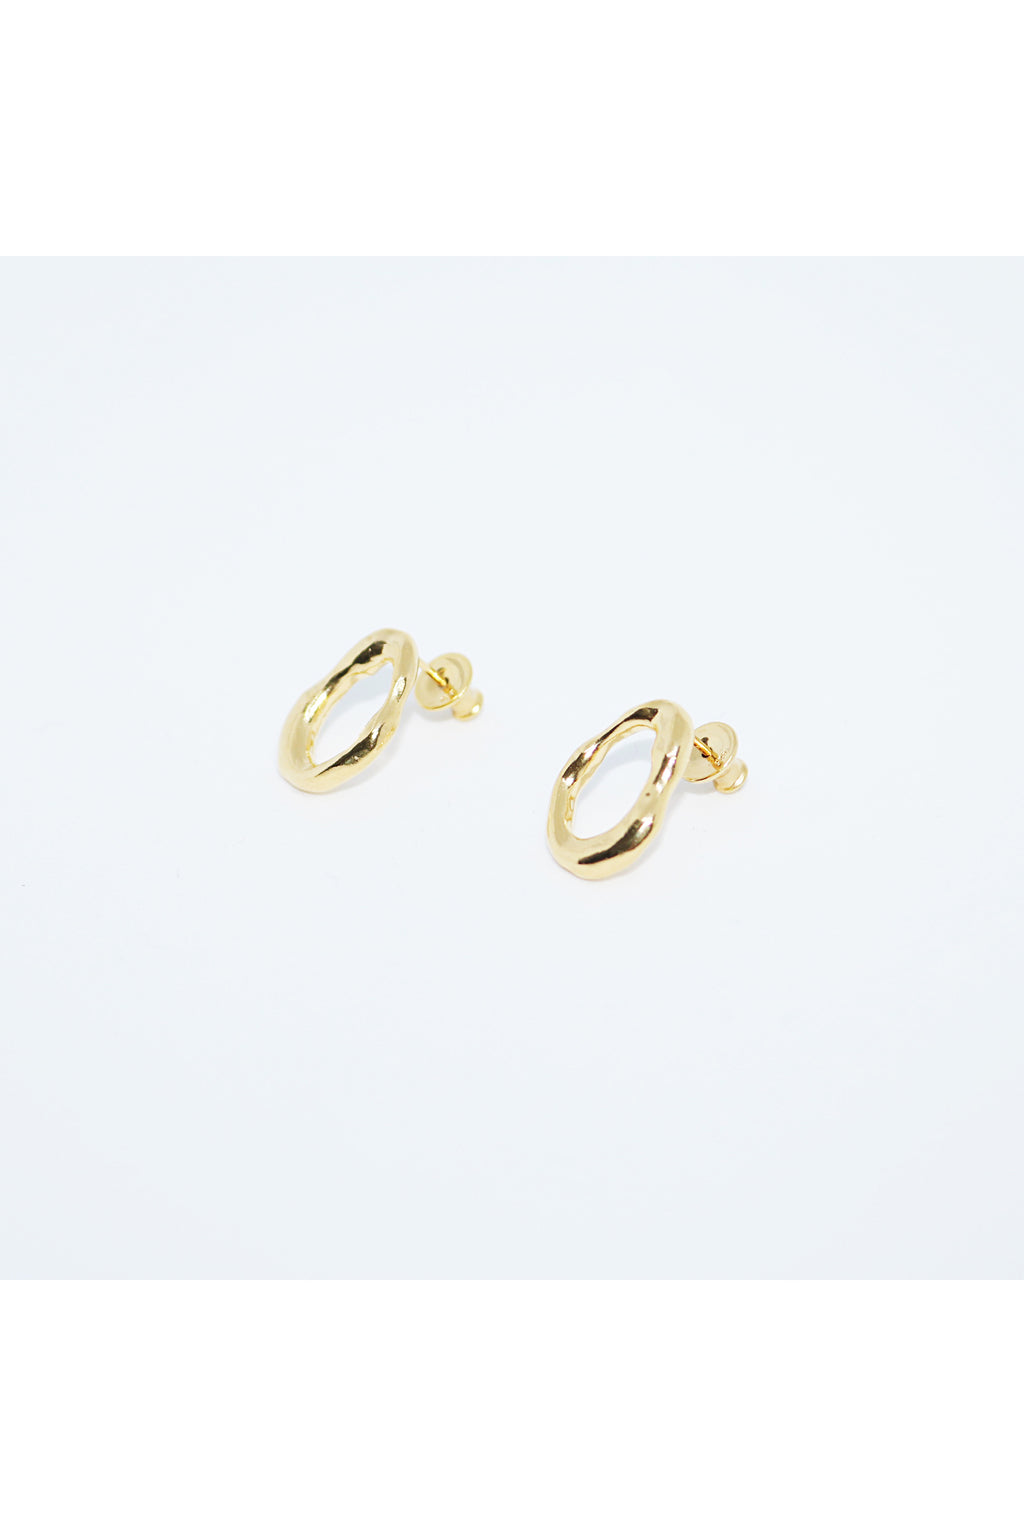 PICOMENT gold flow long grip circle earrings